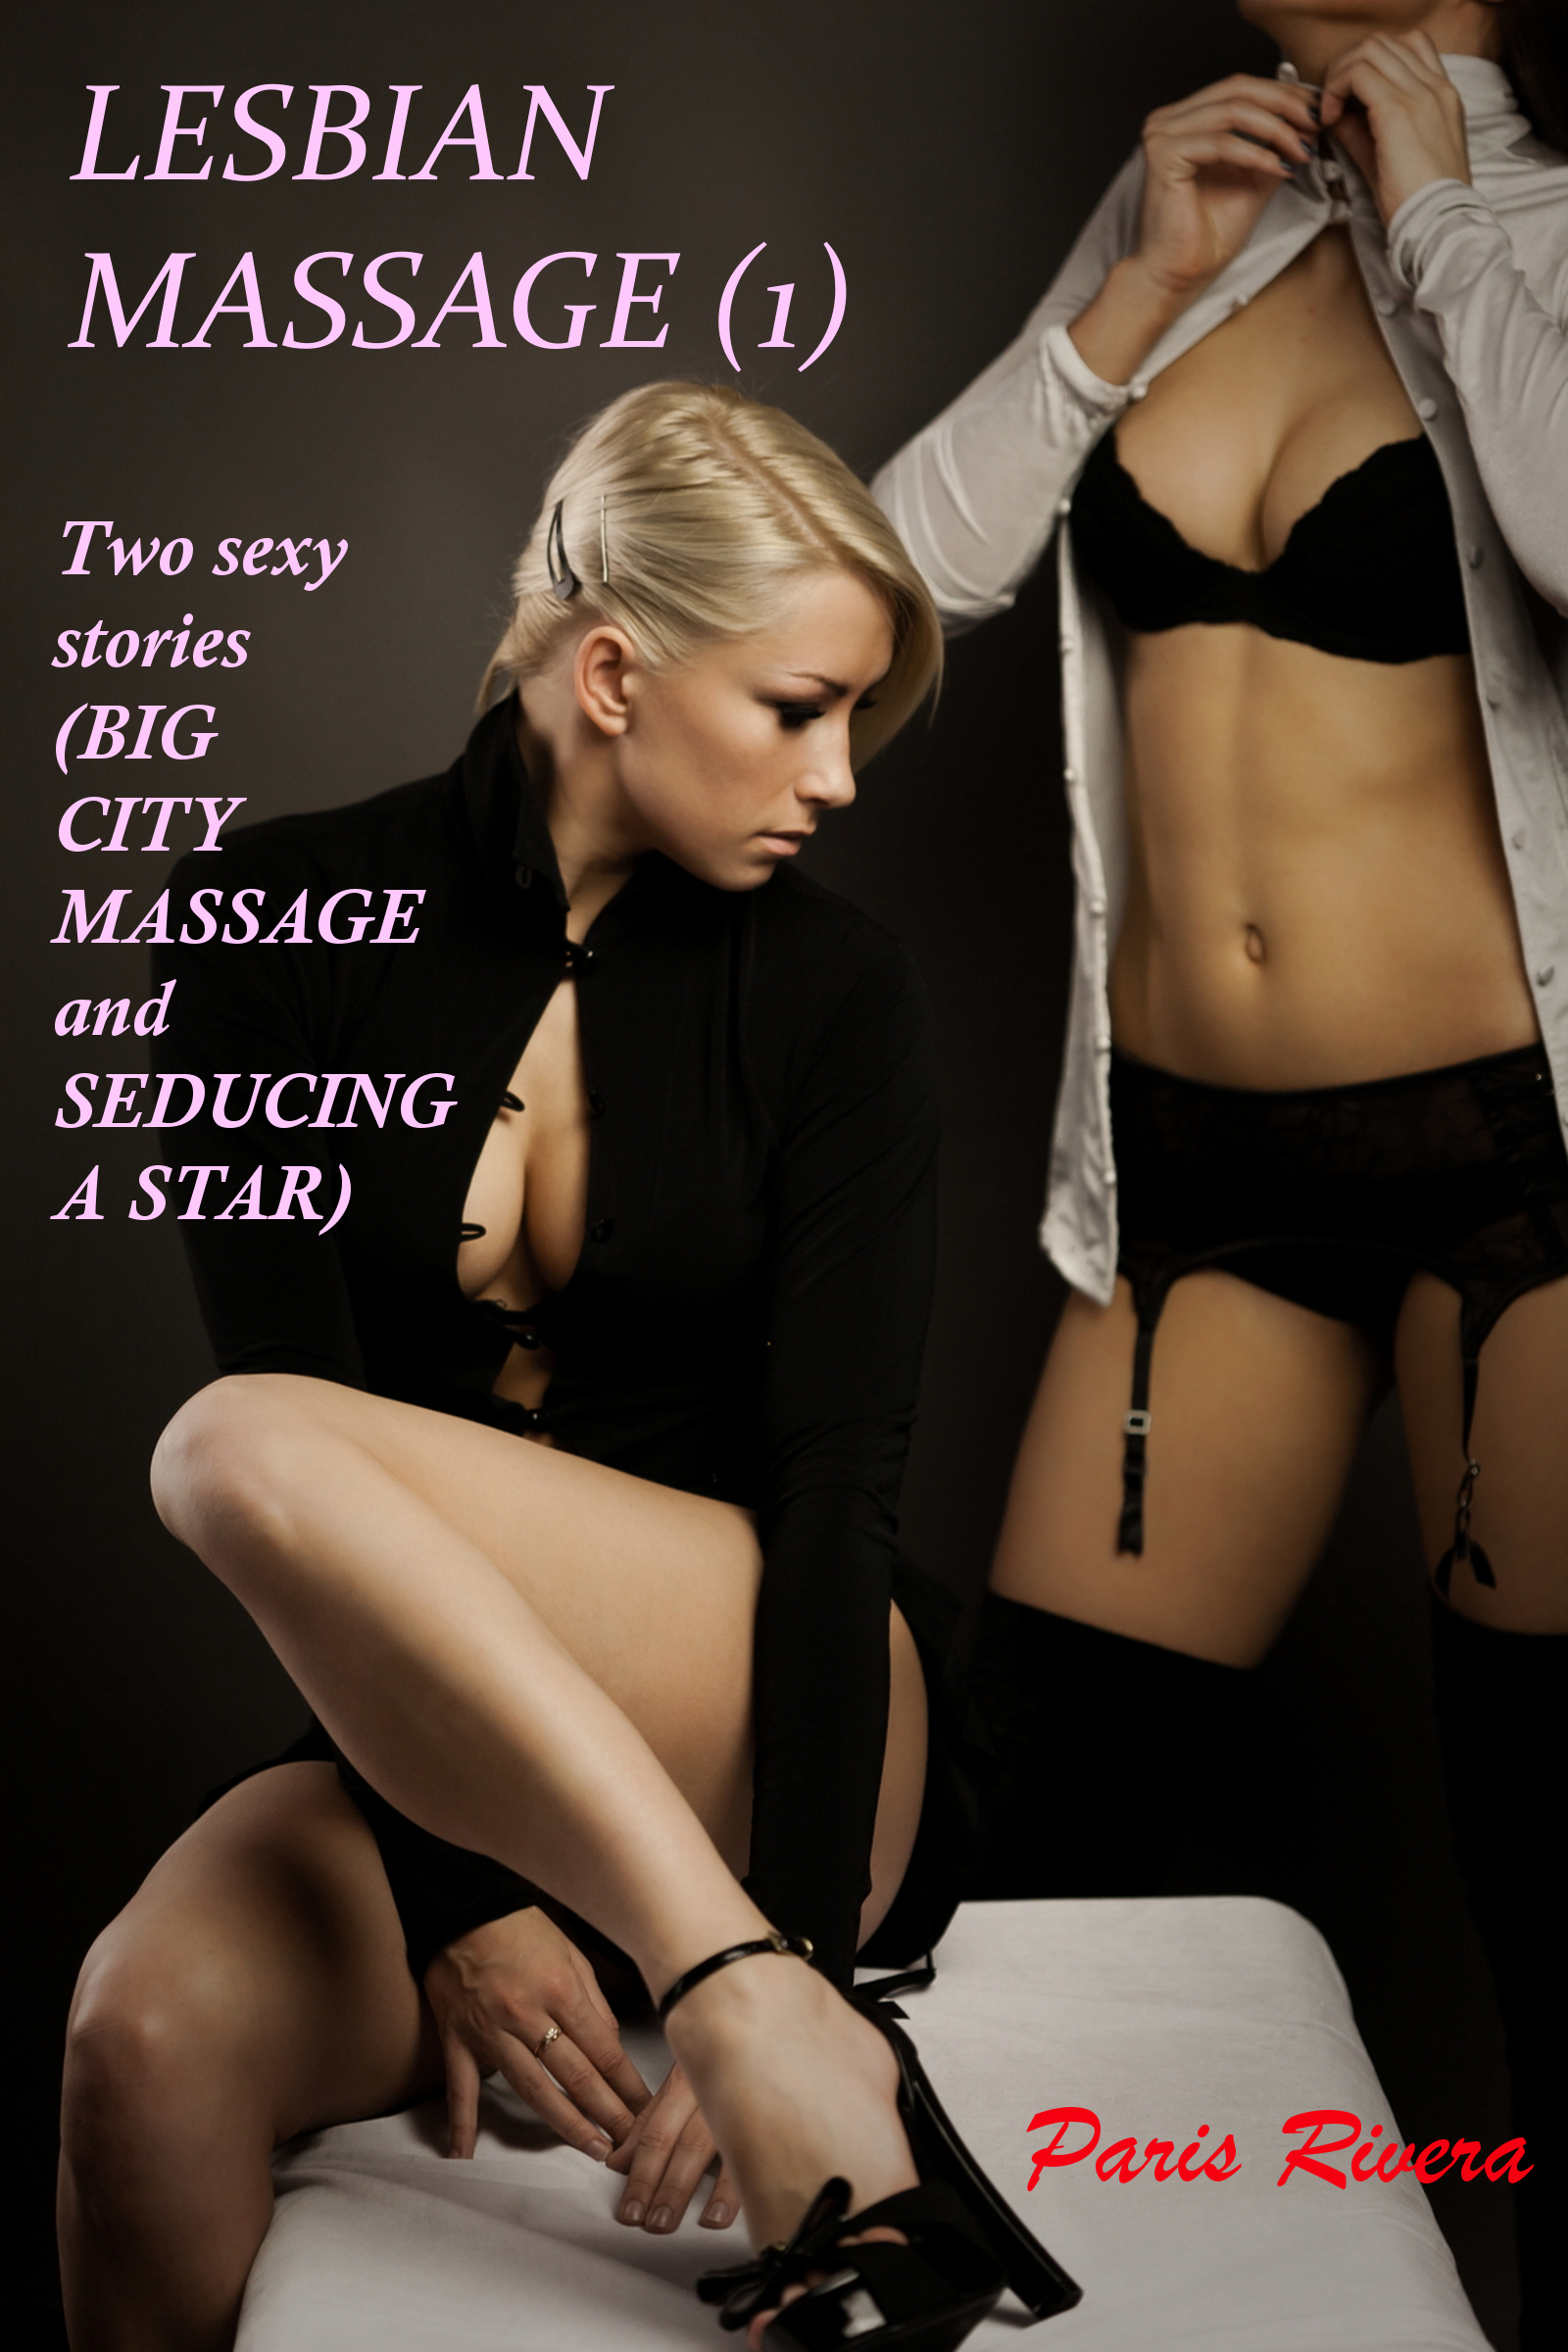 A hot massage turns into hot slamming 5